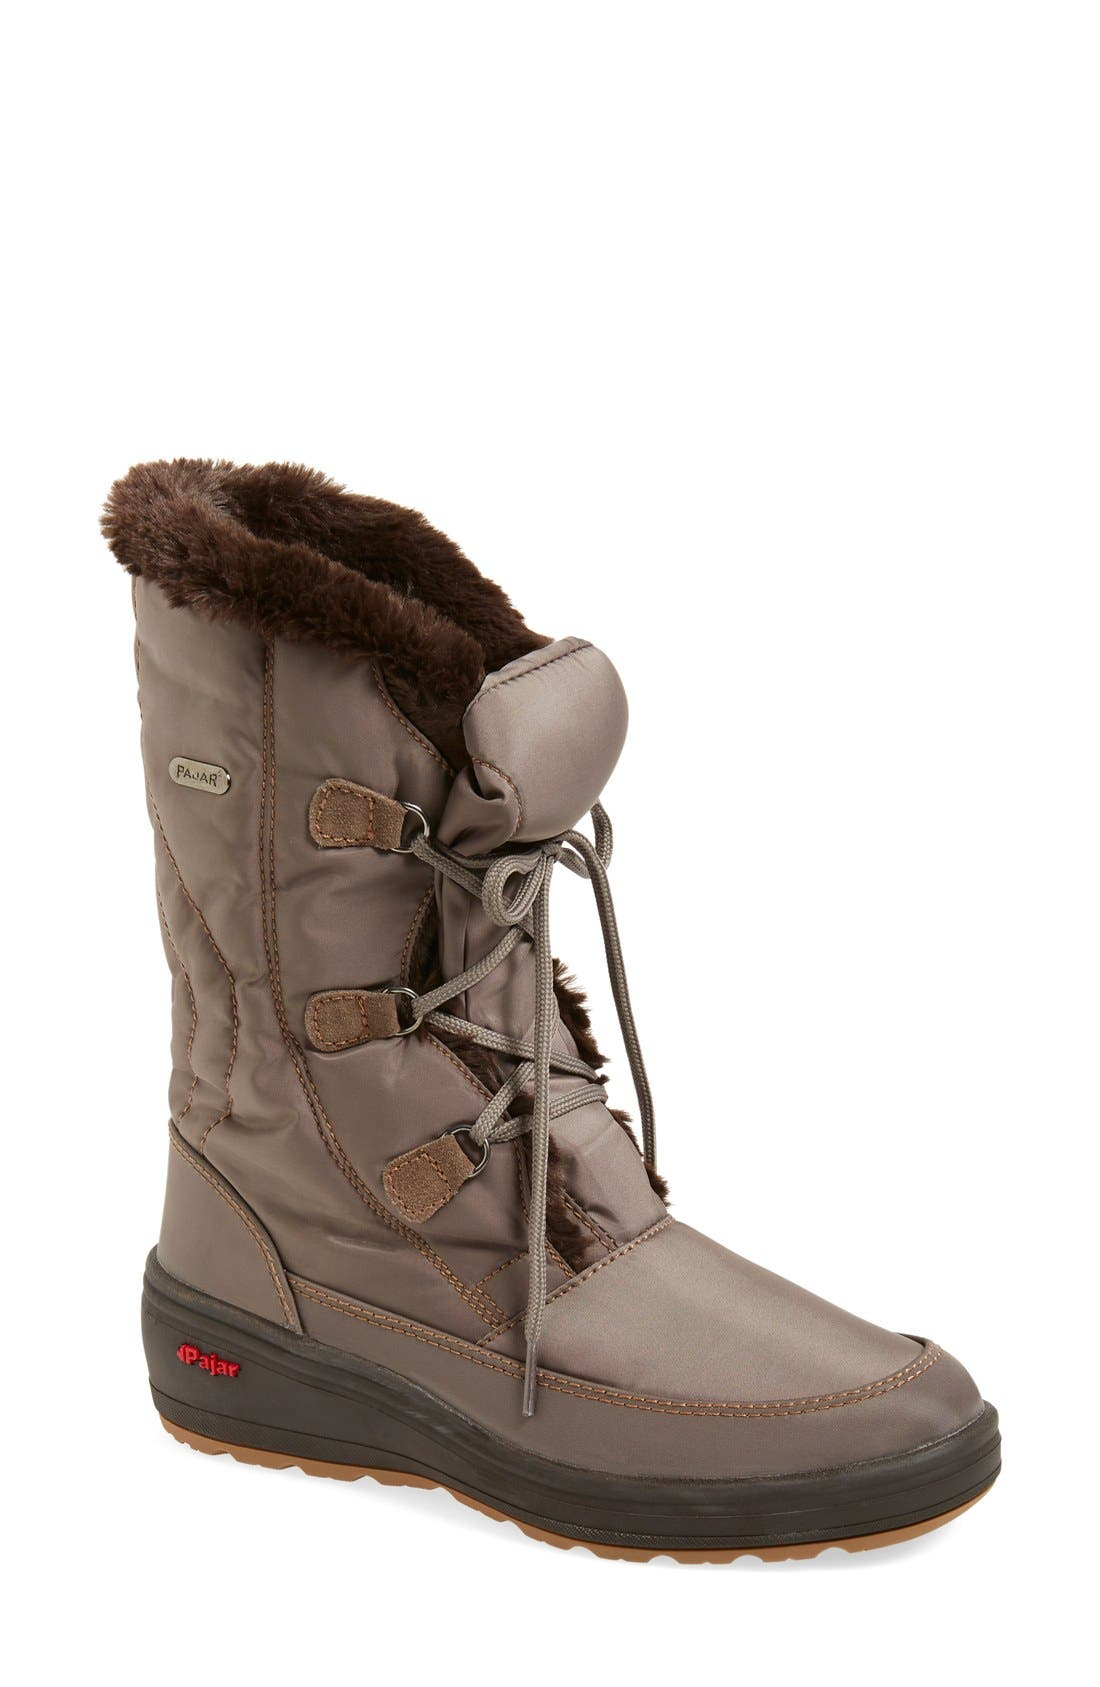 Main Image - Pajar 'Marcie' Waterproof Snow Boot with Faux Fur Collar (Women)